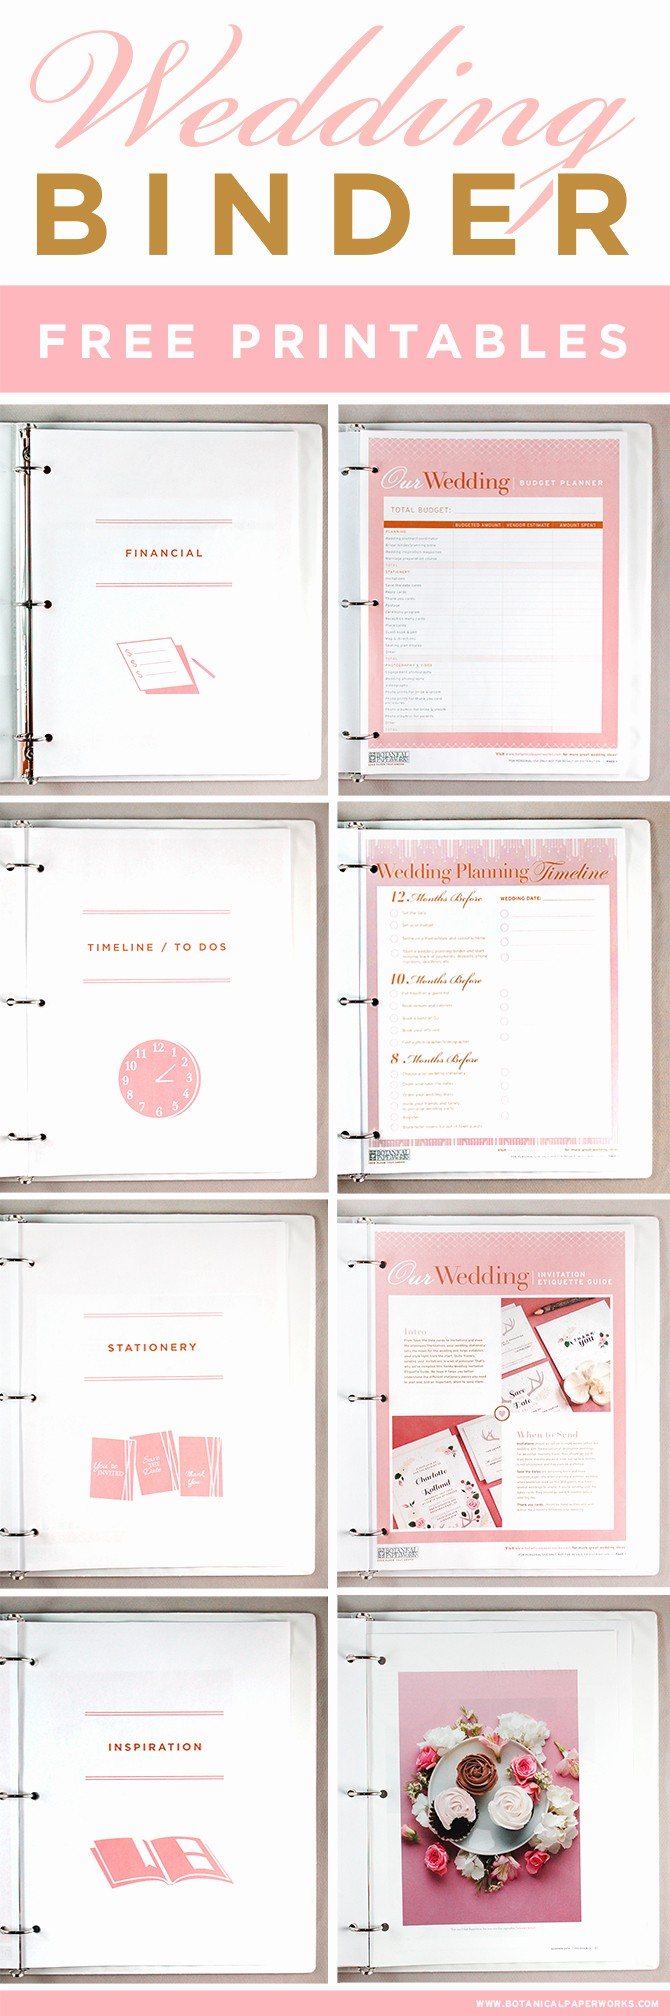 Wedding Binder Cover Page Template Fresh Free Printables Wedding Planning Binder